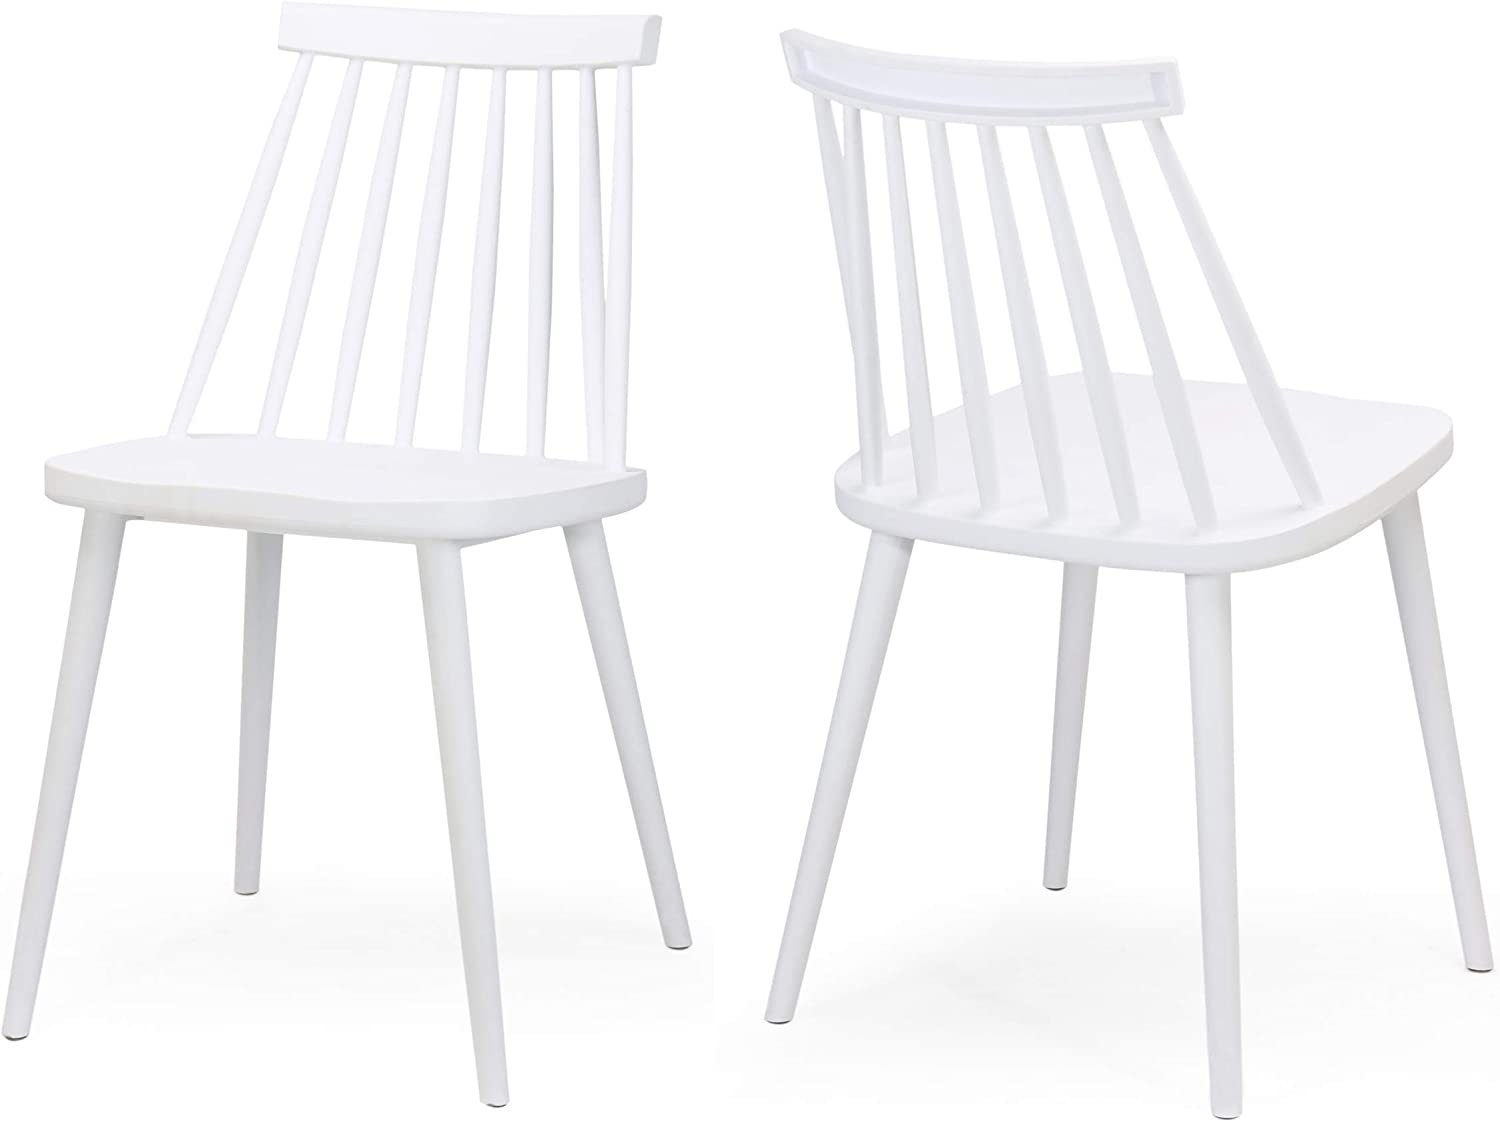 Christopher Knight Home 308095 Phoebe Hume Farmhouse Spindle-Back Dining Chair (Set of 2), White